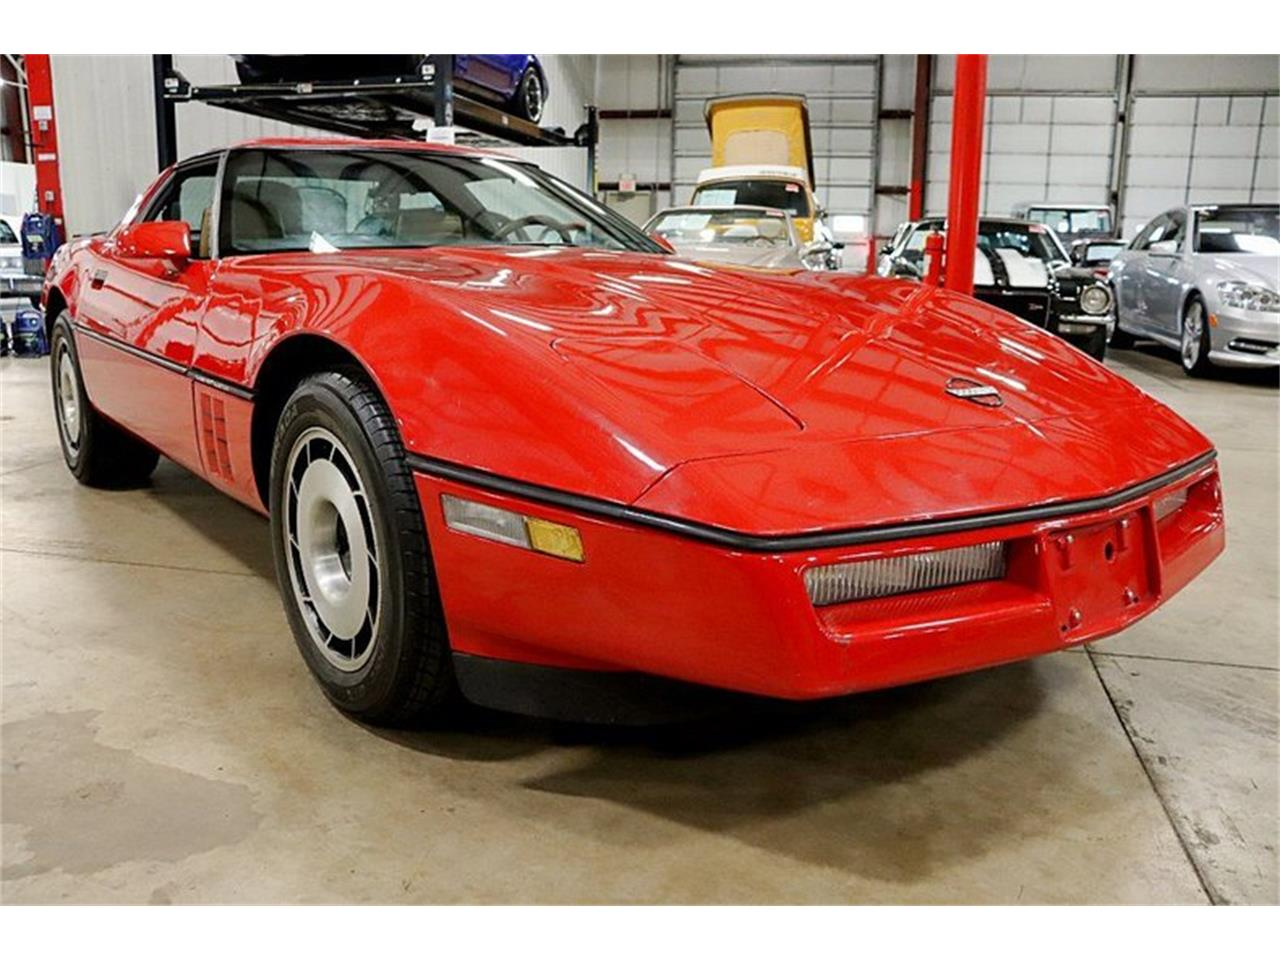 Large Picture of 1985 Chevrolet Corvette located in Michigan - $7,900.00 - R2AD